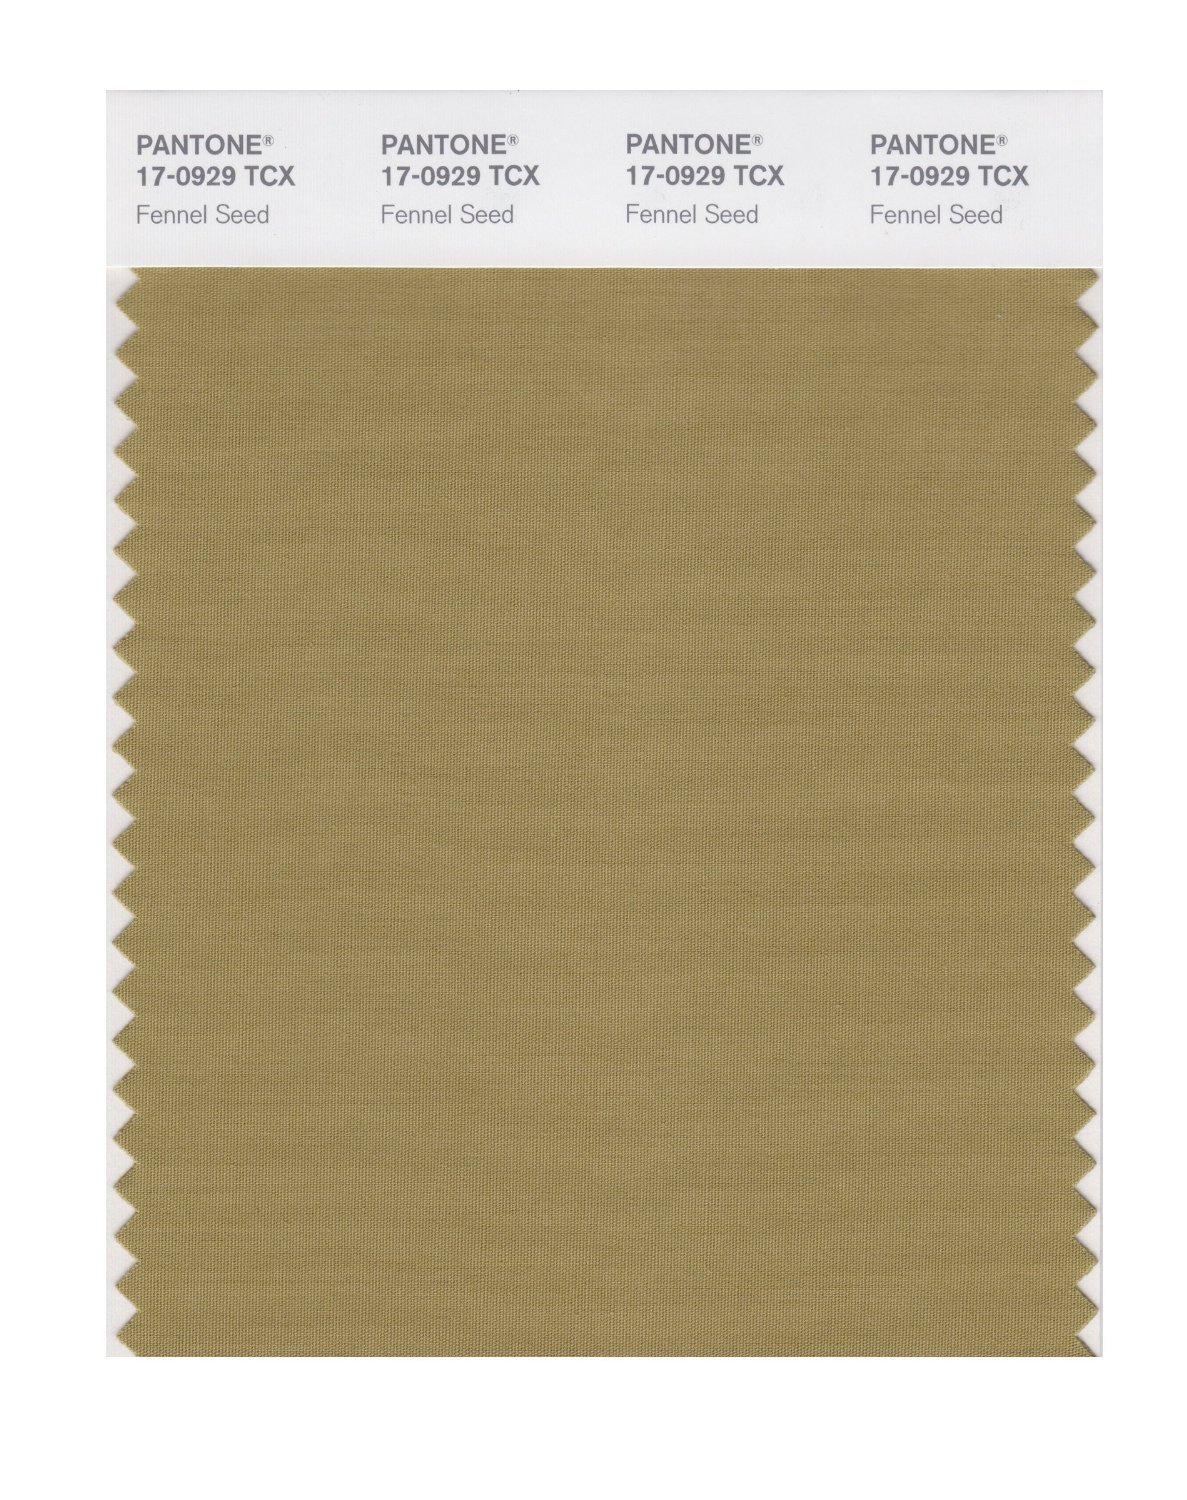 Pantone Smart Swatch 17-0929 Fennel Seed